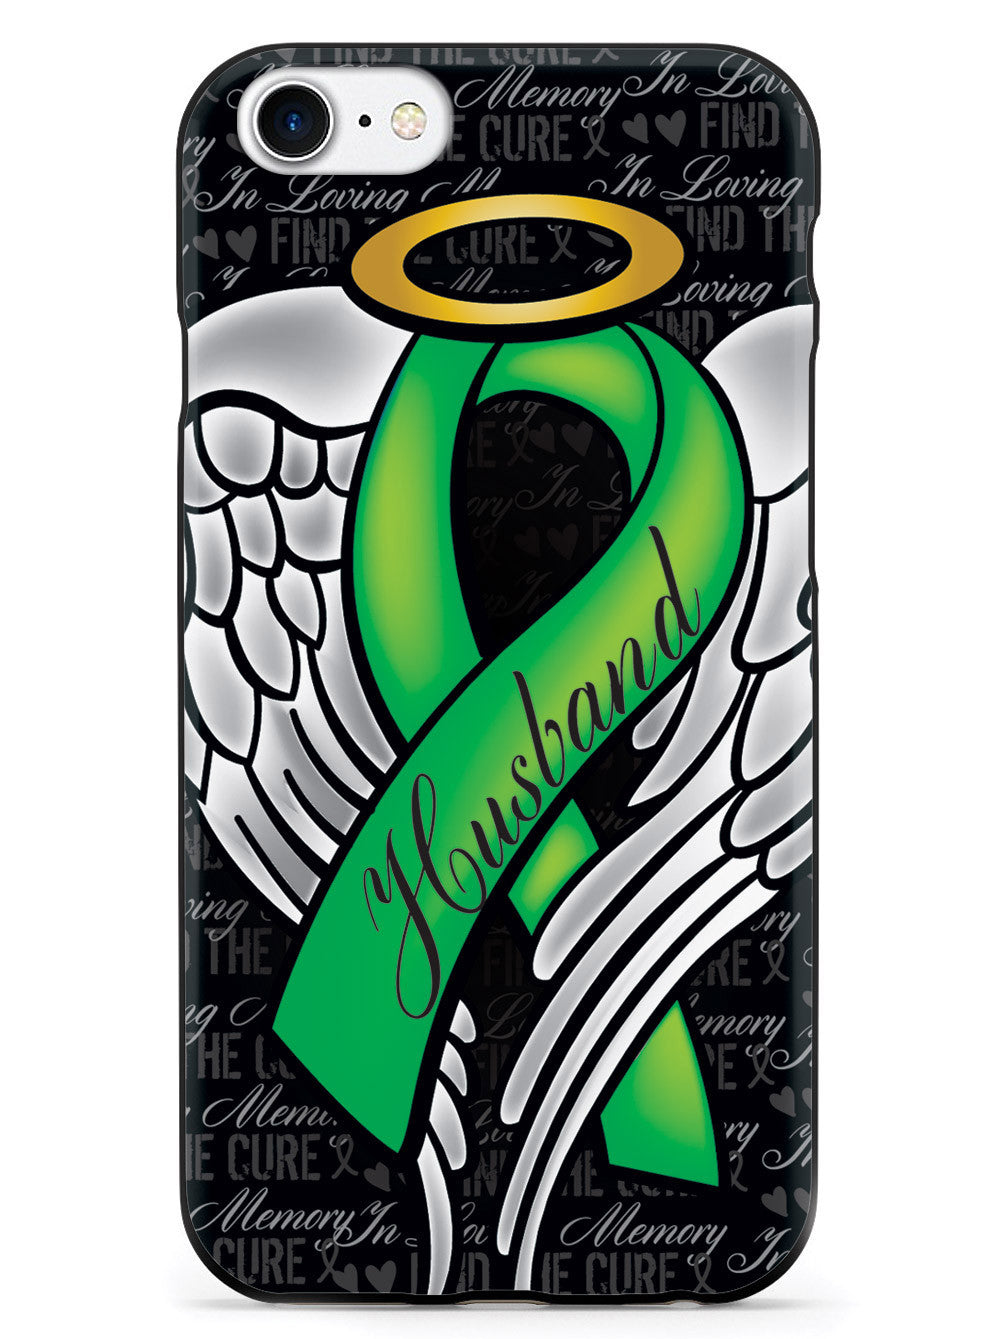 In Loving Memory of My Husband - Green Ribbon Case